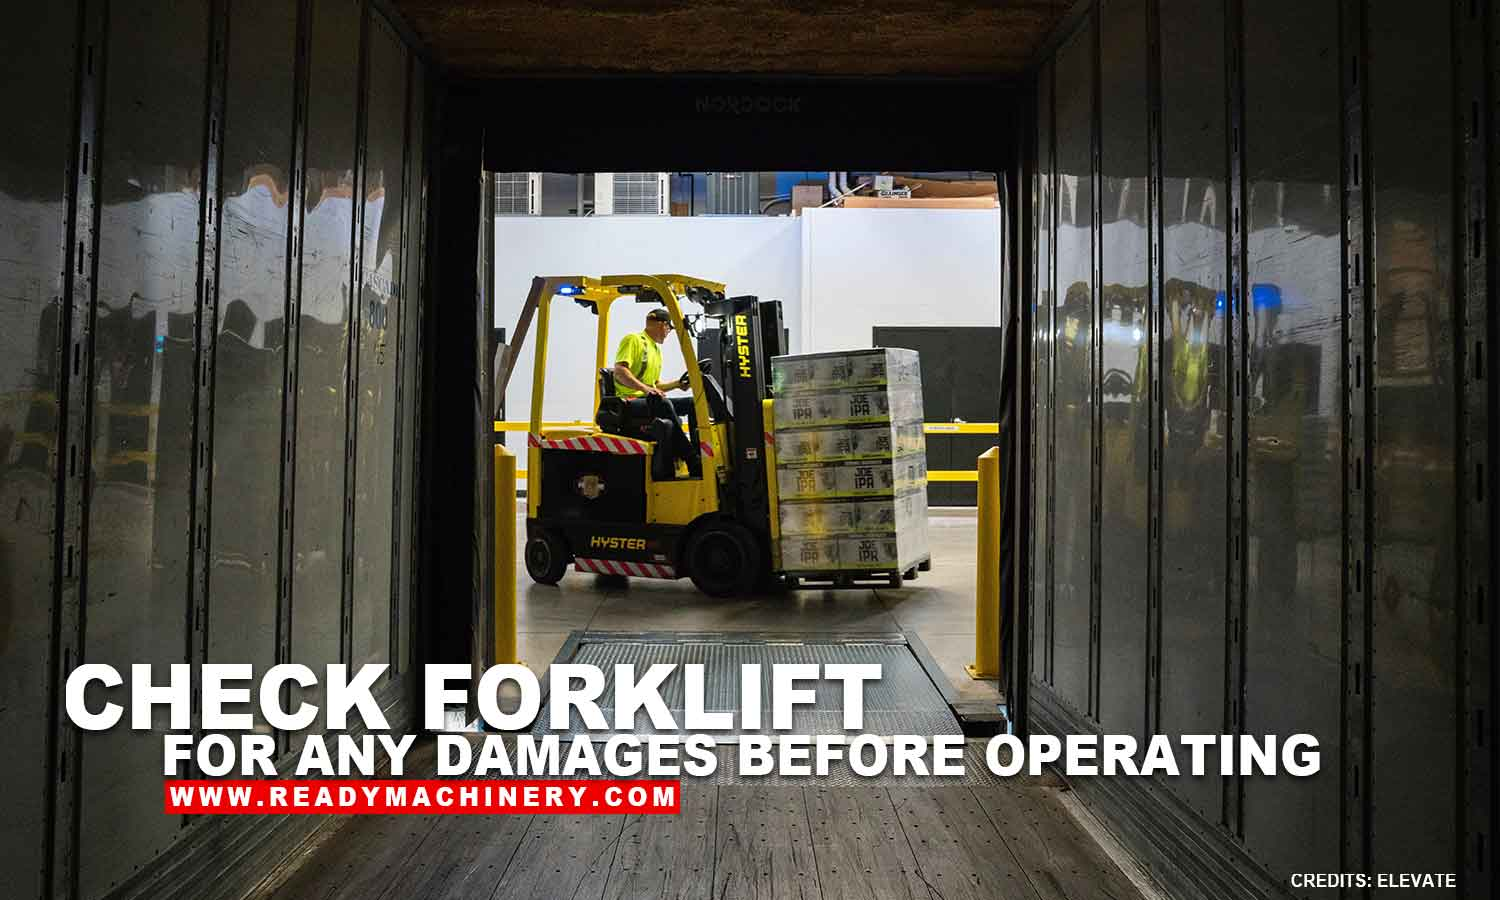 Safety Reminders for Operating Forklifts